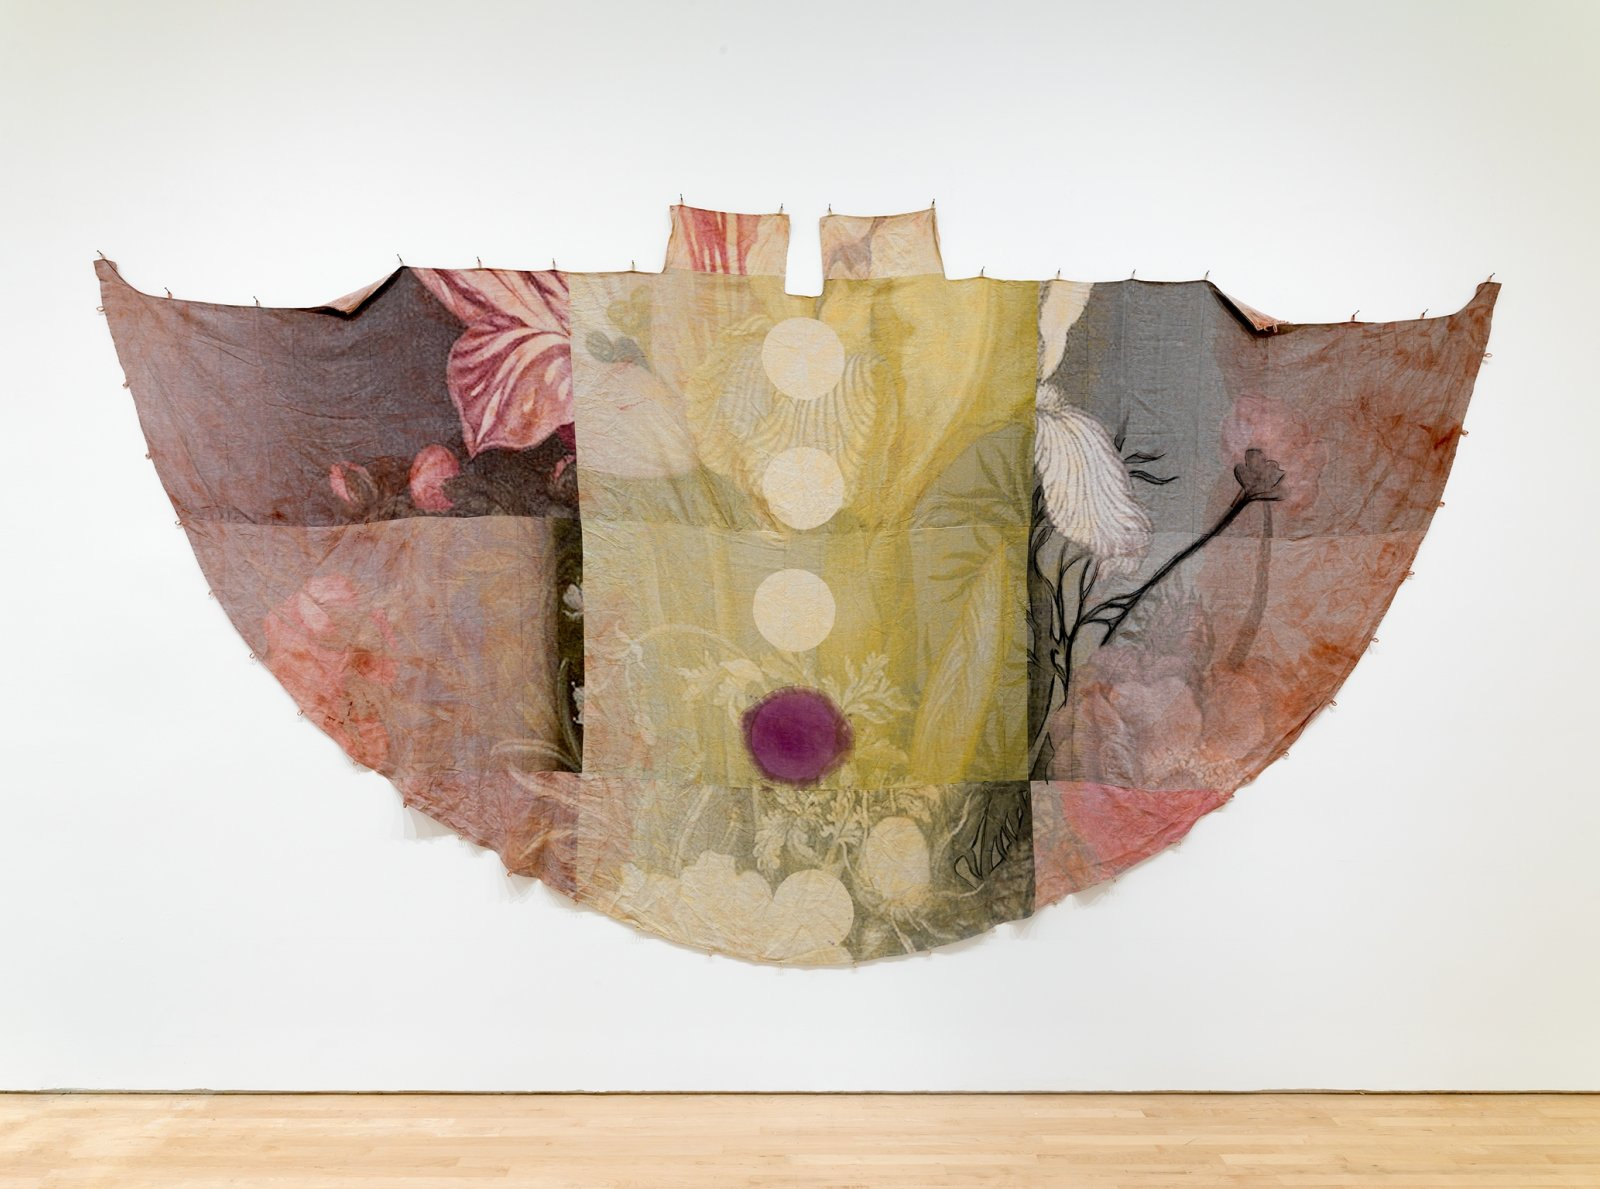 Duane Linklater, can the circle be unbroken 2, 2019, digital print on linen, iron red dye, cypress yellow ochre, blueberry extract, charcoal, nails, 120 x 240 in. (305 x 610 cm). Installation view, SOFT POWER, SF MOMA, San Francisco, USA, 2019